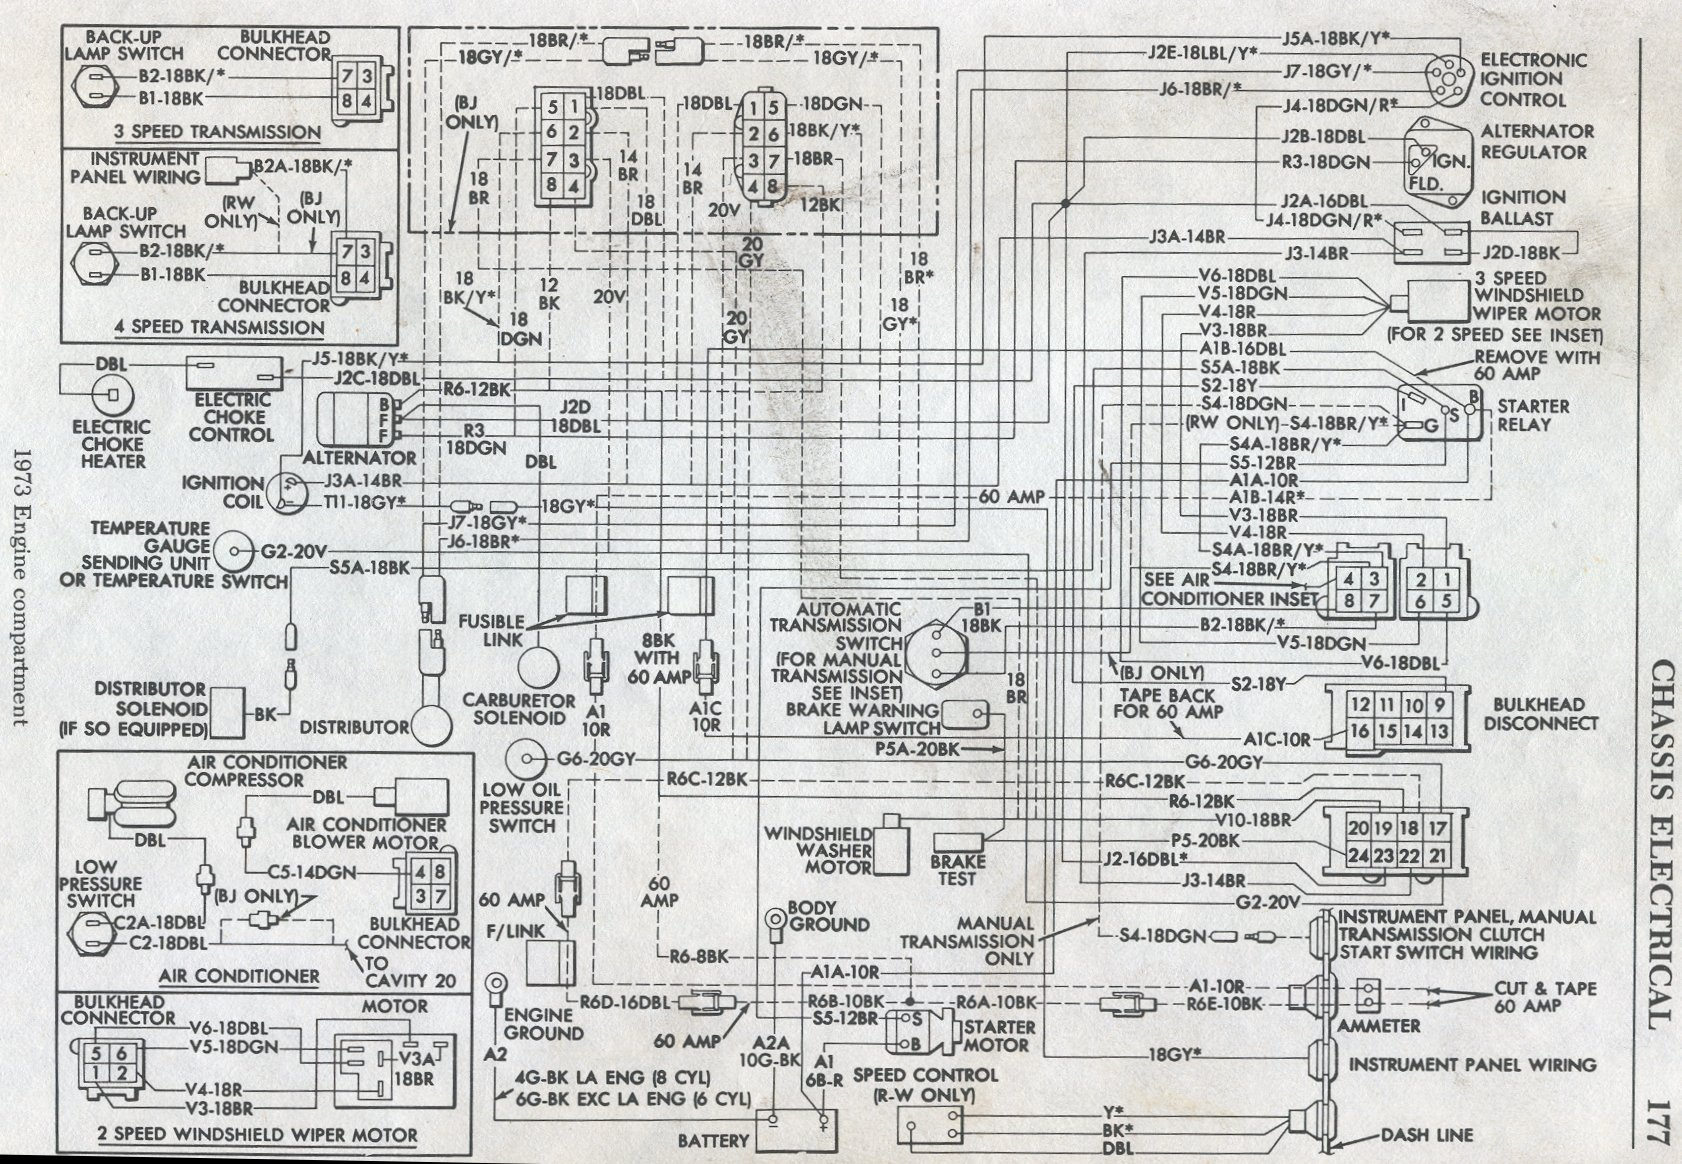 mopar ac wiring diagrams - wiring diagram 1973 plymouth cuda wiring diagram 1972 plymouth cuda wiring diagram